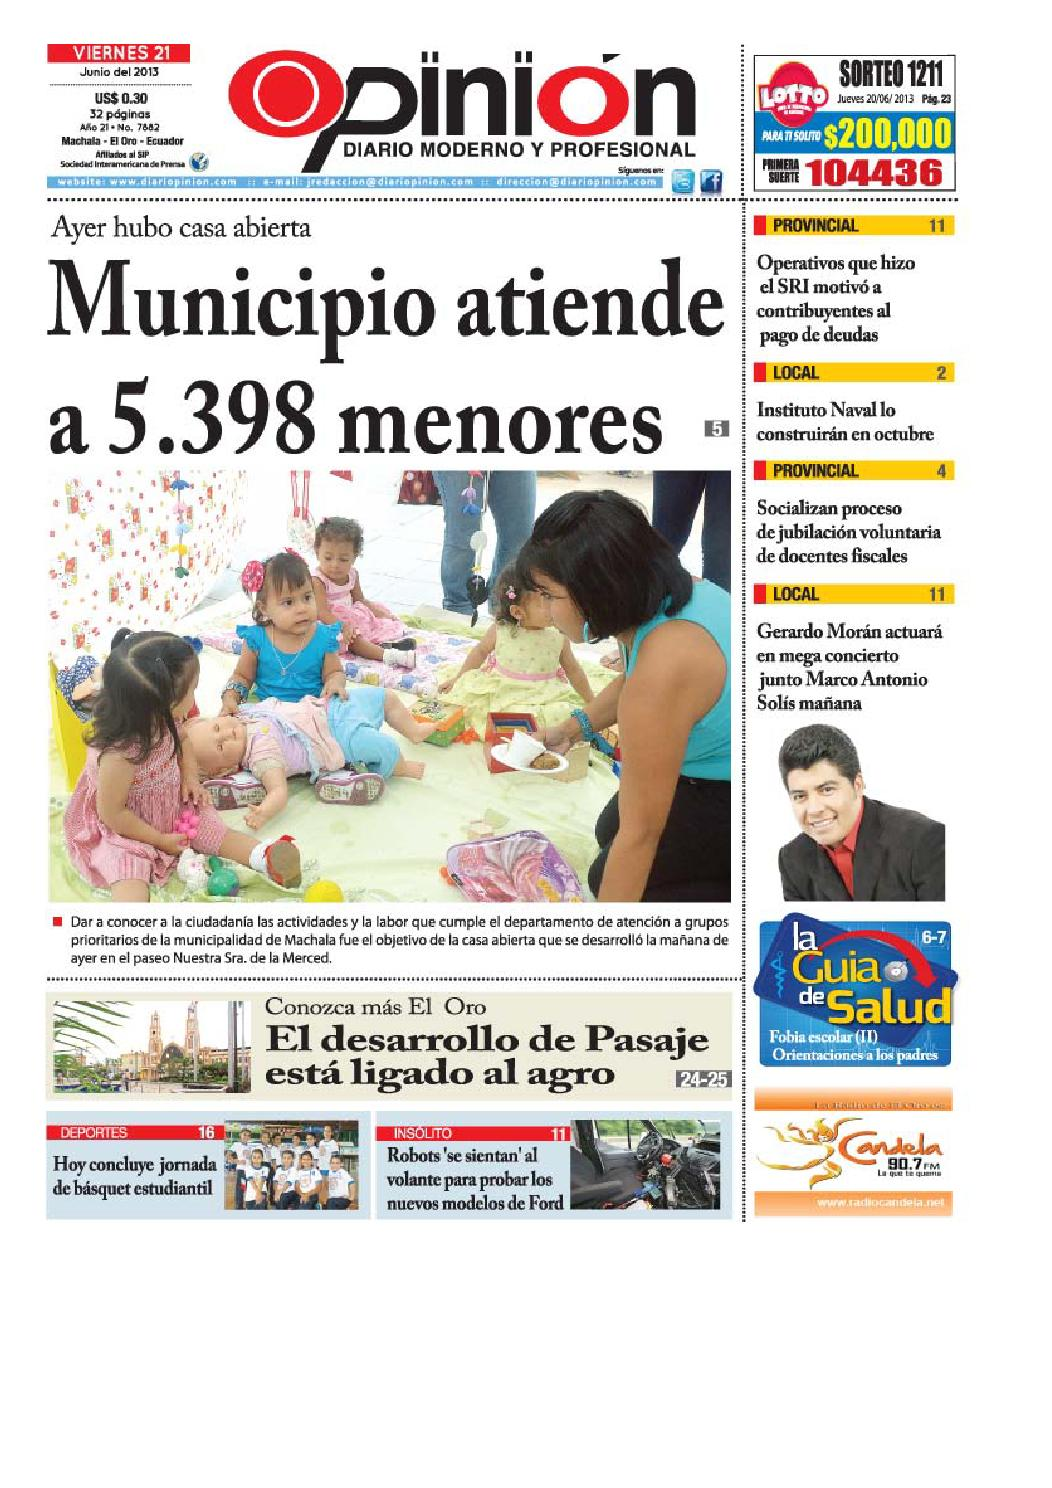 Impreso 21 06 13 by Diario Opinion - issuu 66be7fc37778